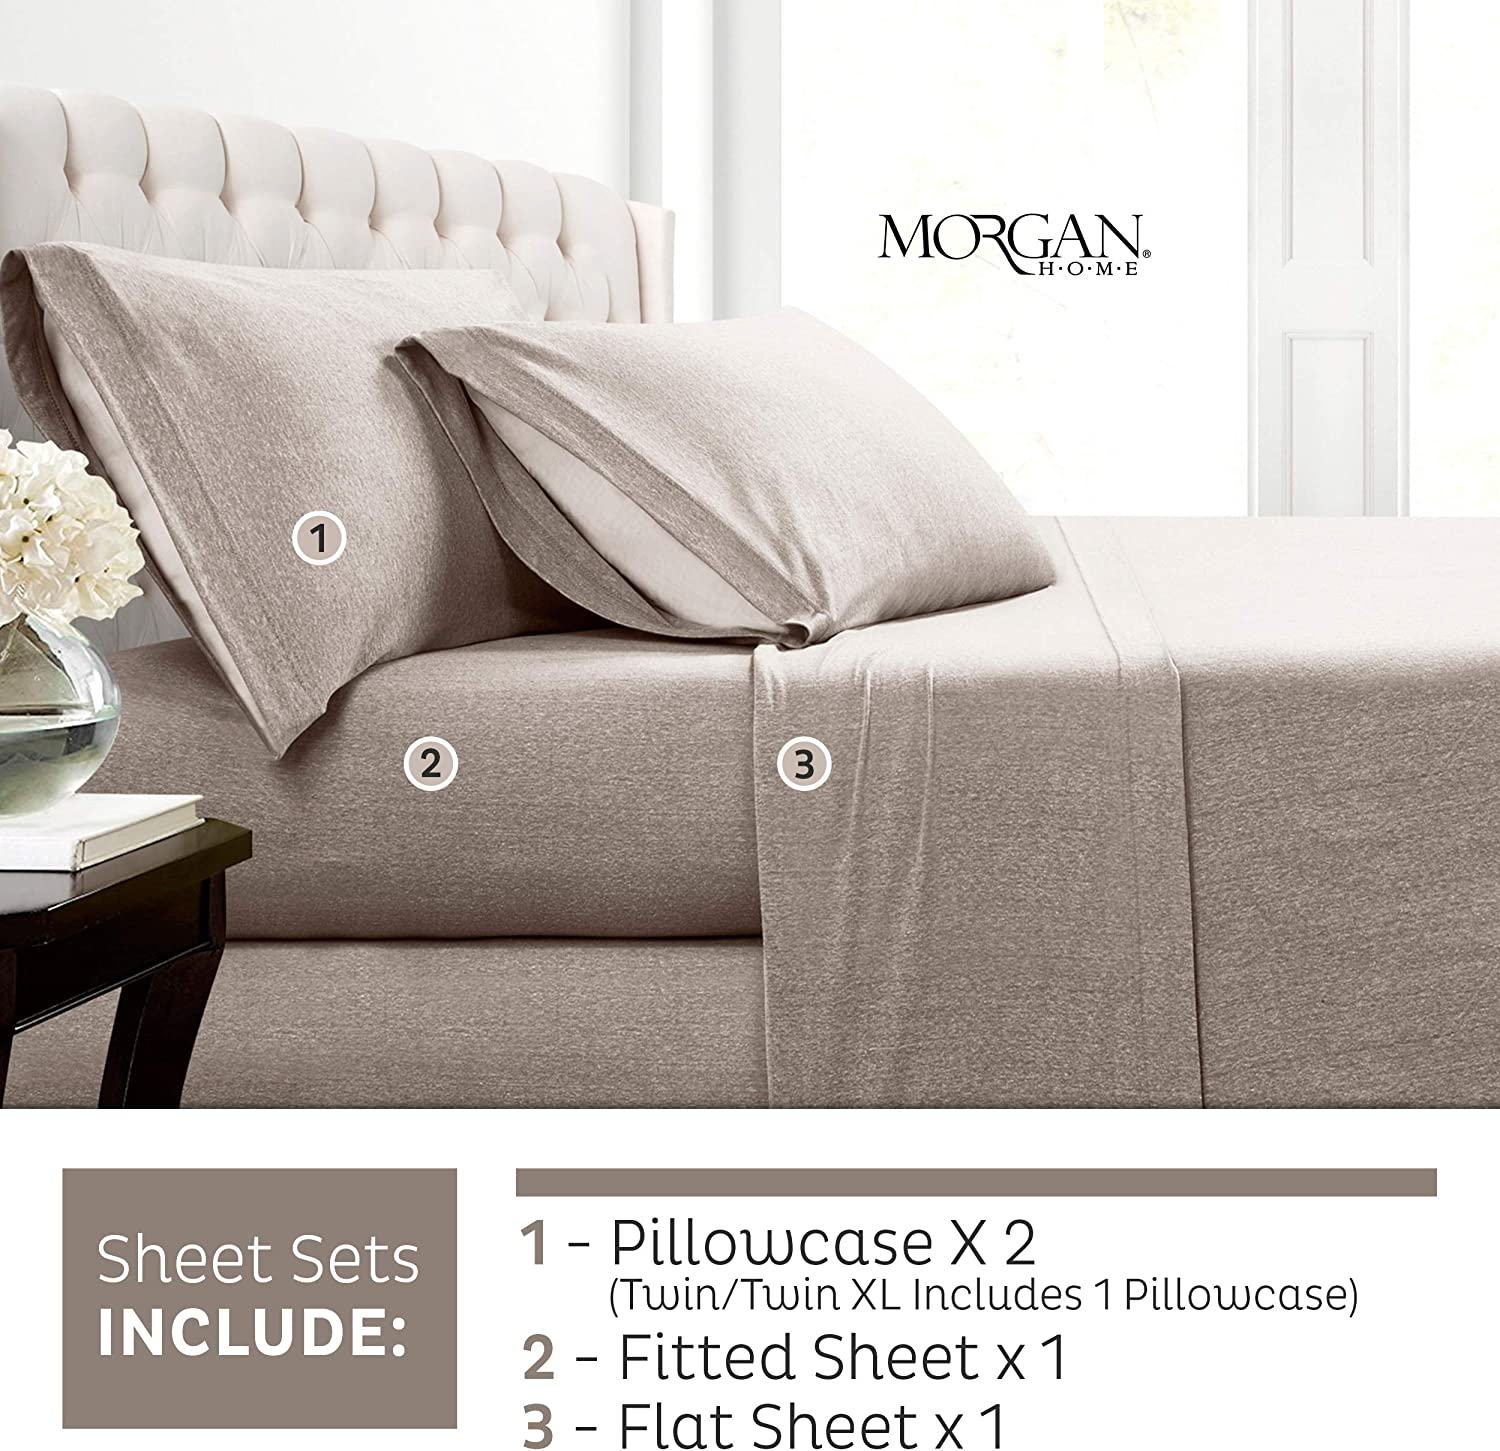 Morgan Home Fashions Cotton Rich T-Shirt Soft Heather Jersey Knit Pillowcases- All Season Bed Sheets, Warm and Cozy (2 Pack Pillowcases, Heather Taupe)